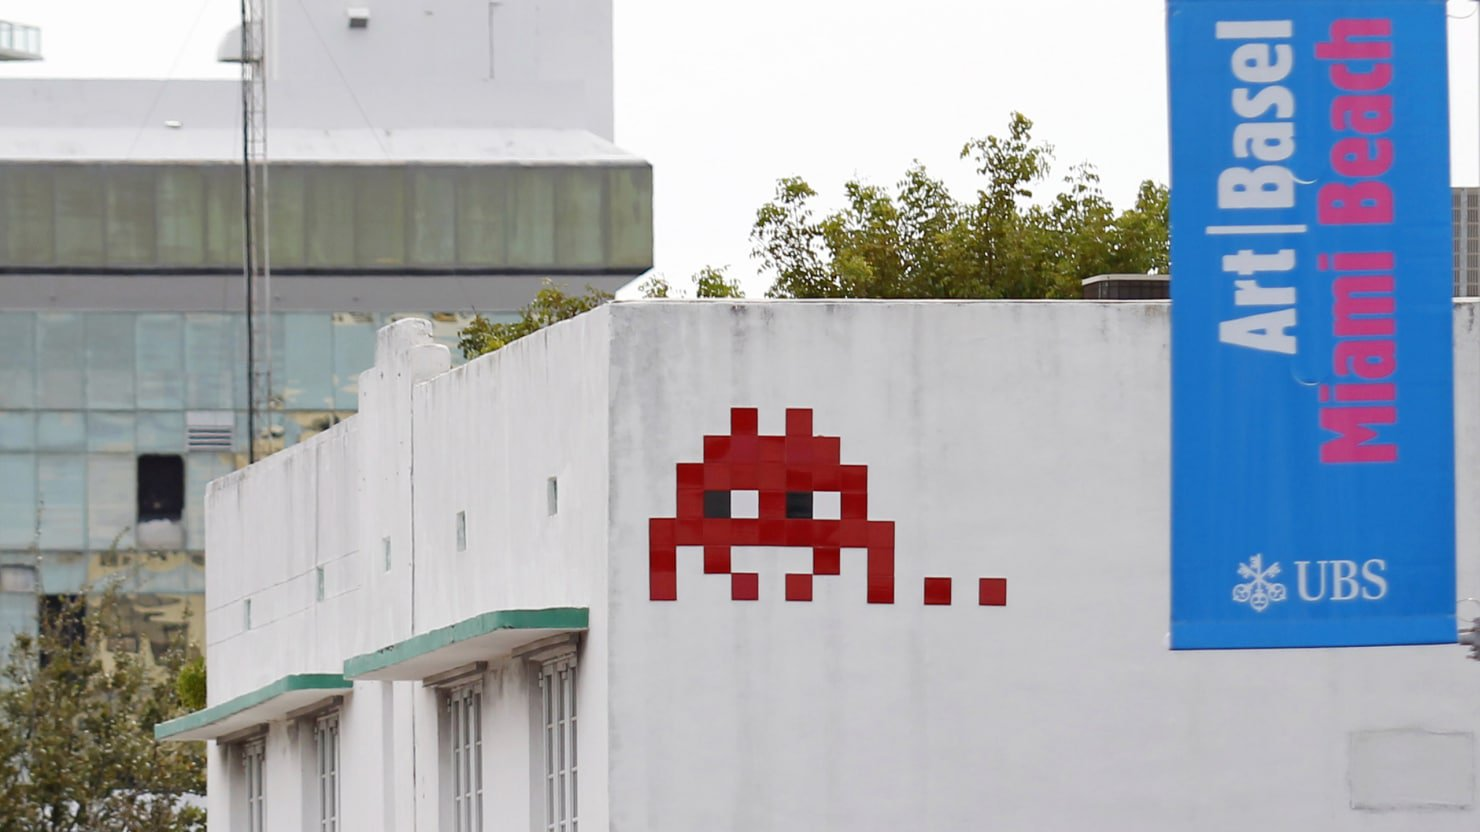 Invader: From Street Art Legend to the Gallery